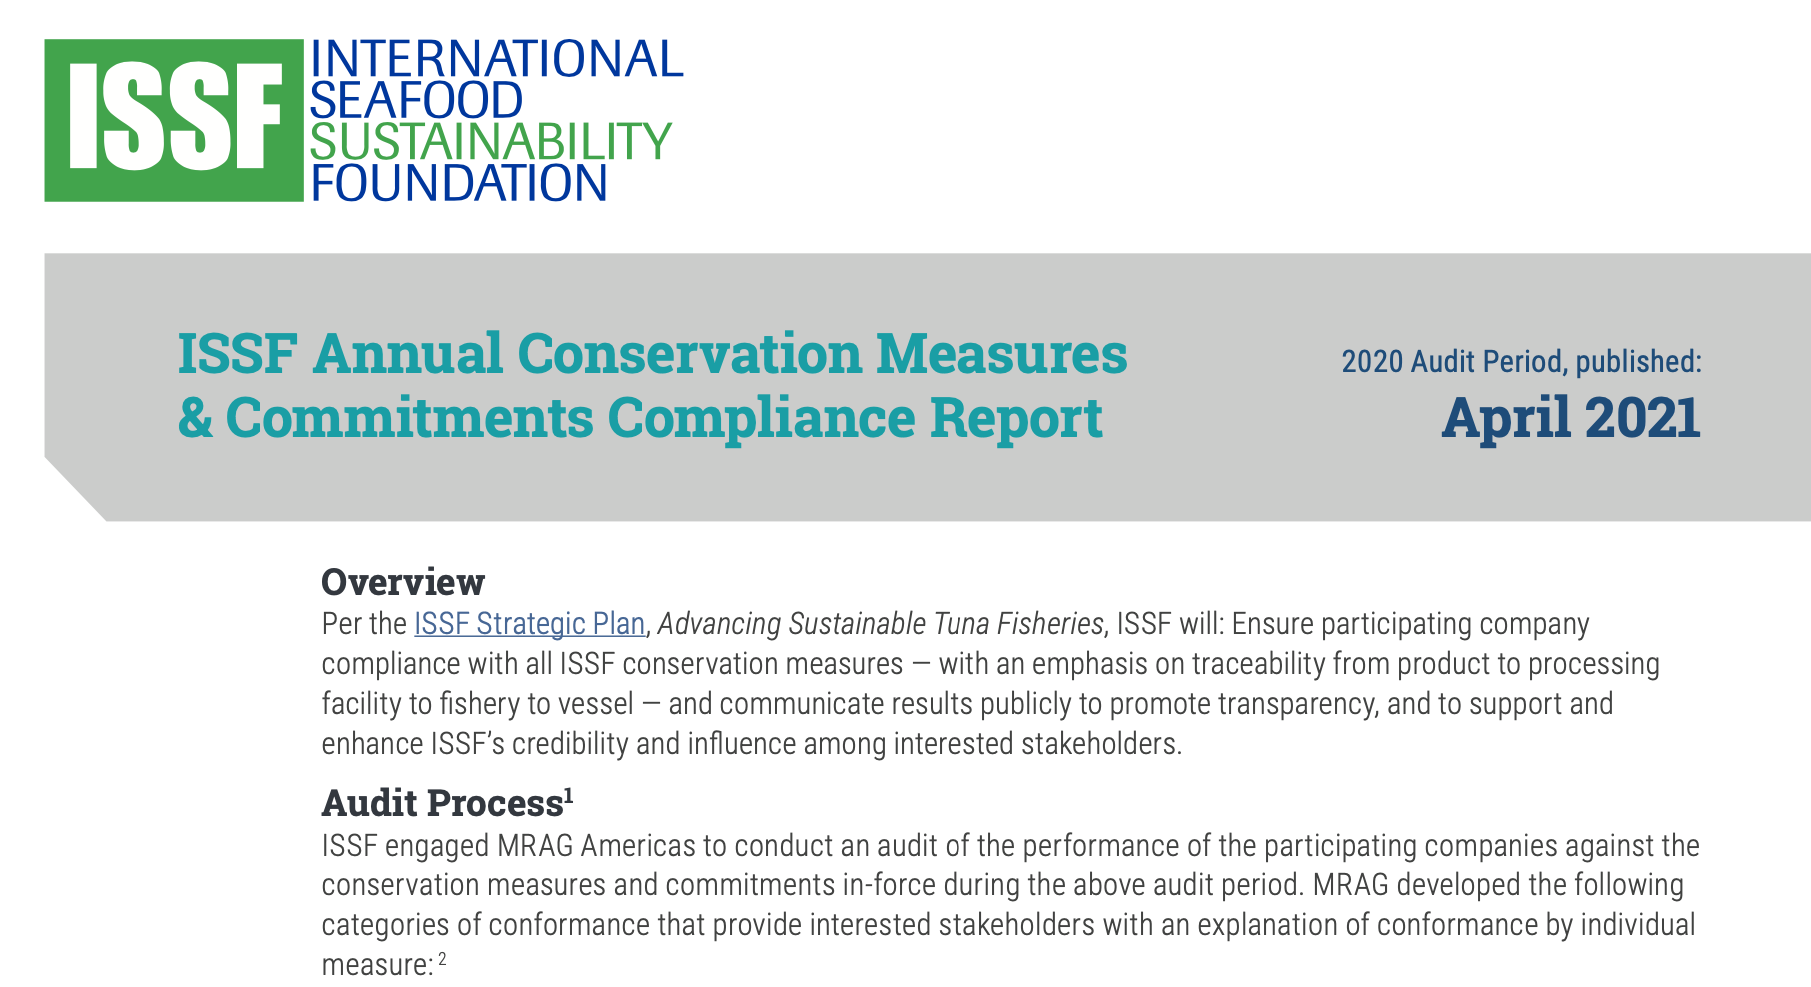 ISSF Annual Conservation Measures & Commitments Compliance Report